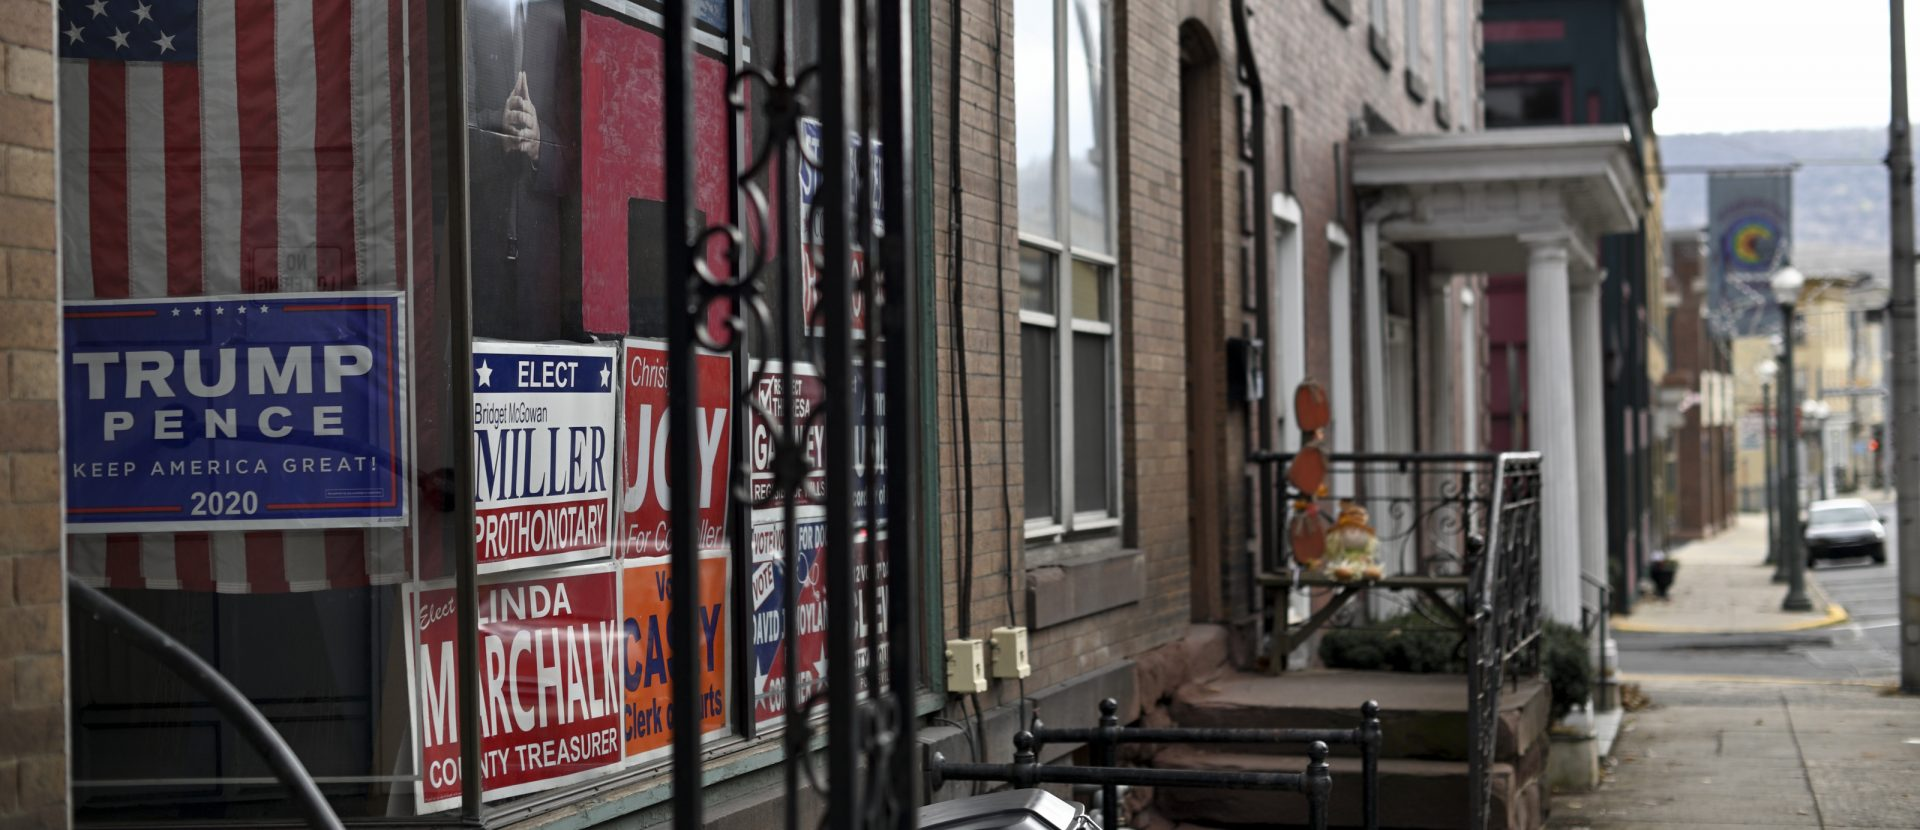 Campaign signs in support of Republican candidates and a cardboard cut-out portrait of President Donald Trump decorate a window along Hotel St. in Pottsville, PA, on December 15, 2019.